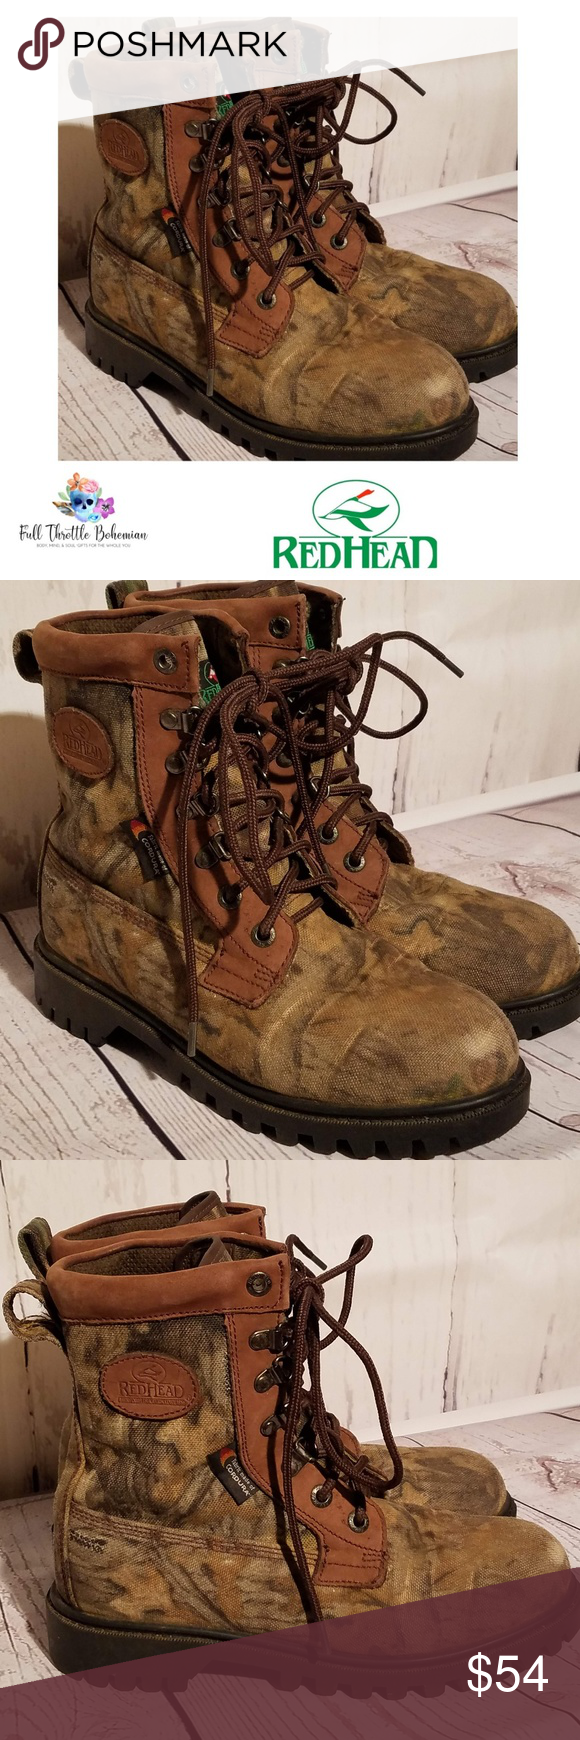 newest 89fa1 9844e RedHead Expedition Hunting Boots Mens 5.5M RedHead ...